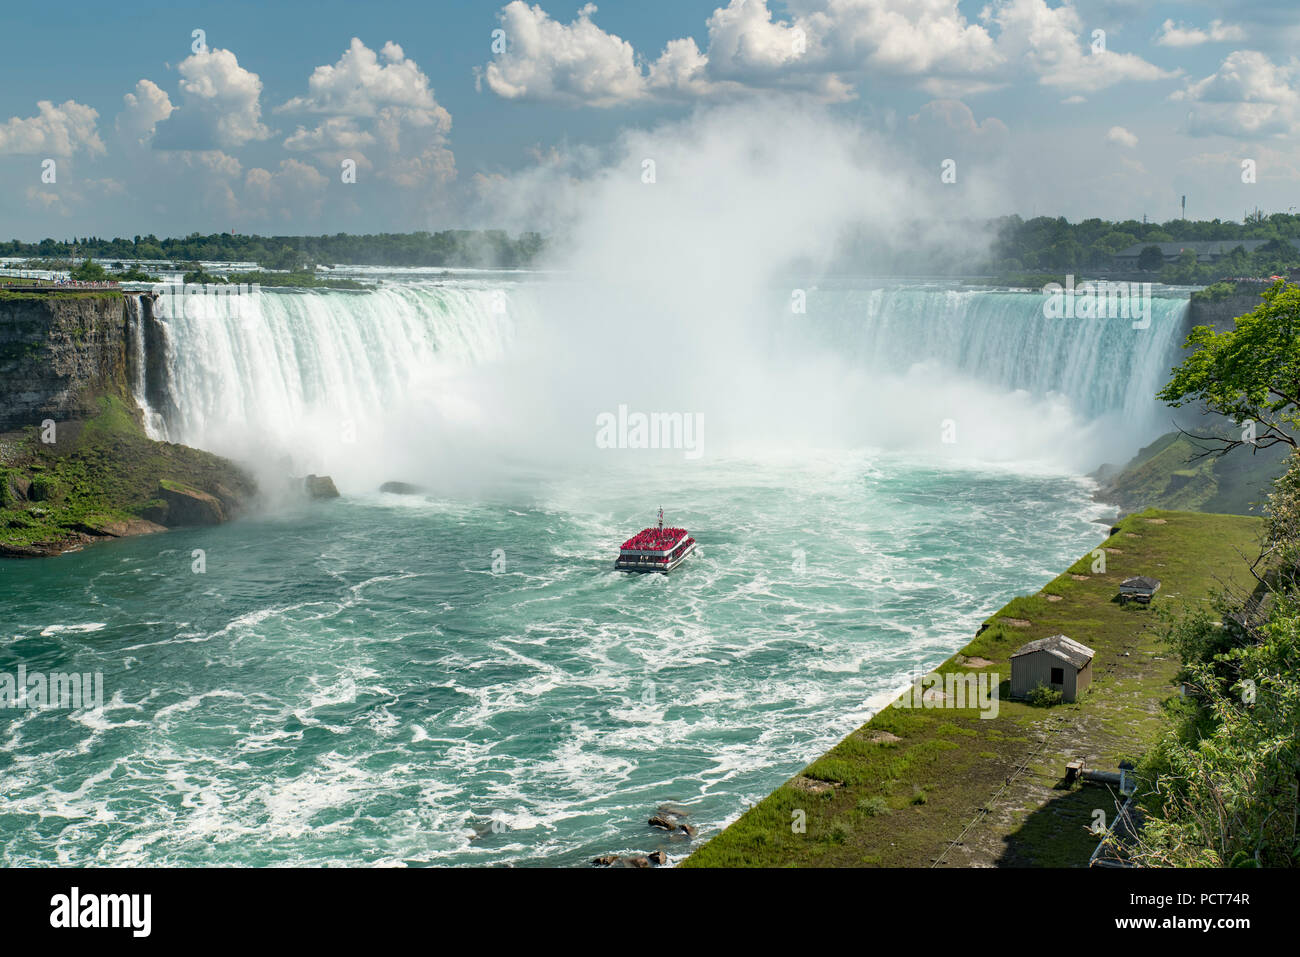 Niagara Falls Ontario Canada View From Canadian Side In Summer Of Tourists Viewing Canadian Horseshoe Falls From Top And From Tour Boat Hornblower Stock Photo Alamy